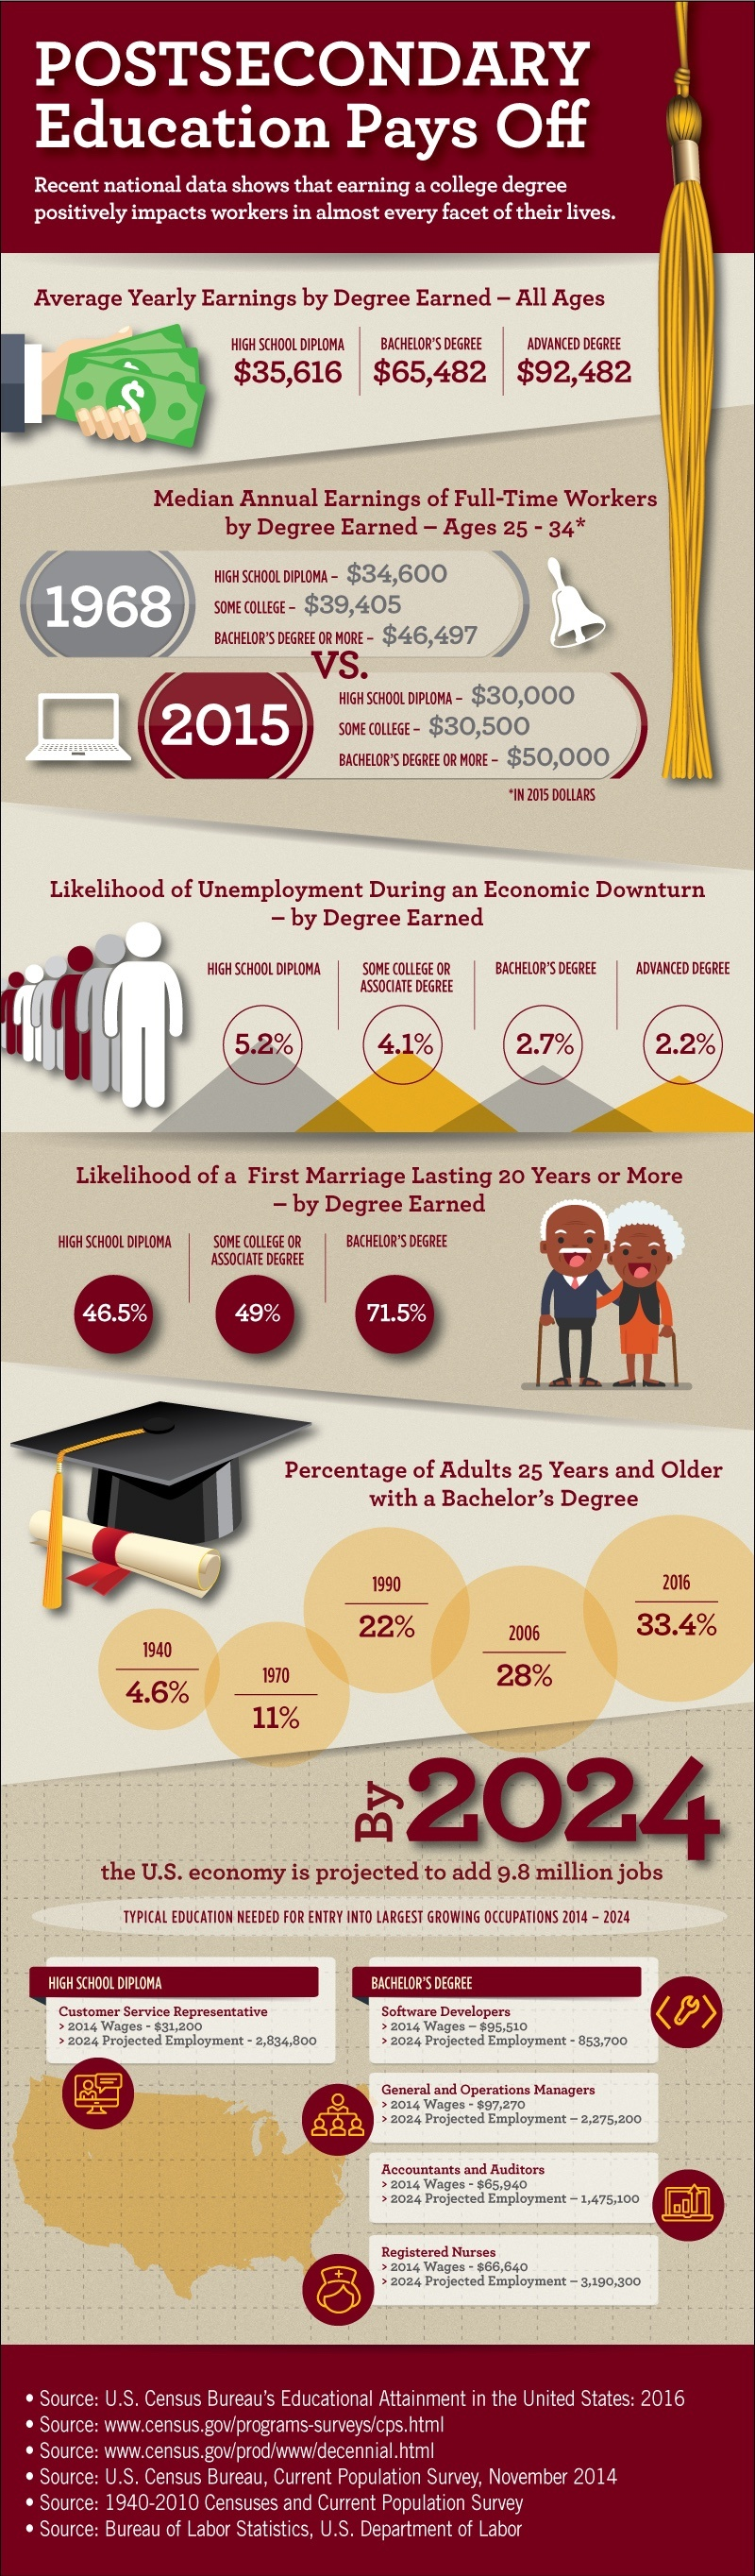 TESU Postsecondary Education Pays Off Infographic.